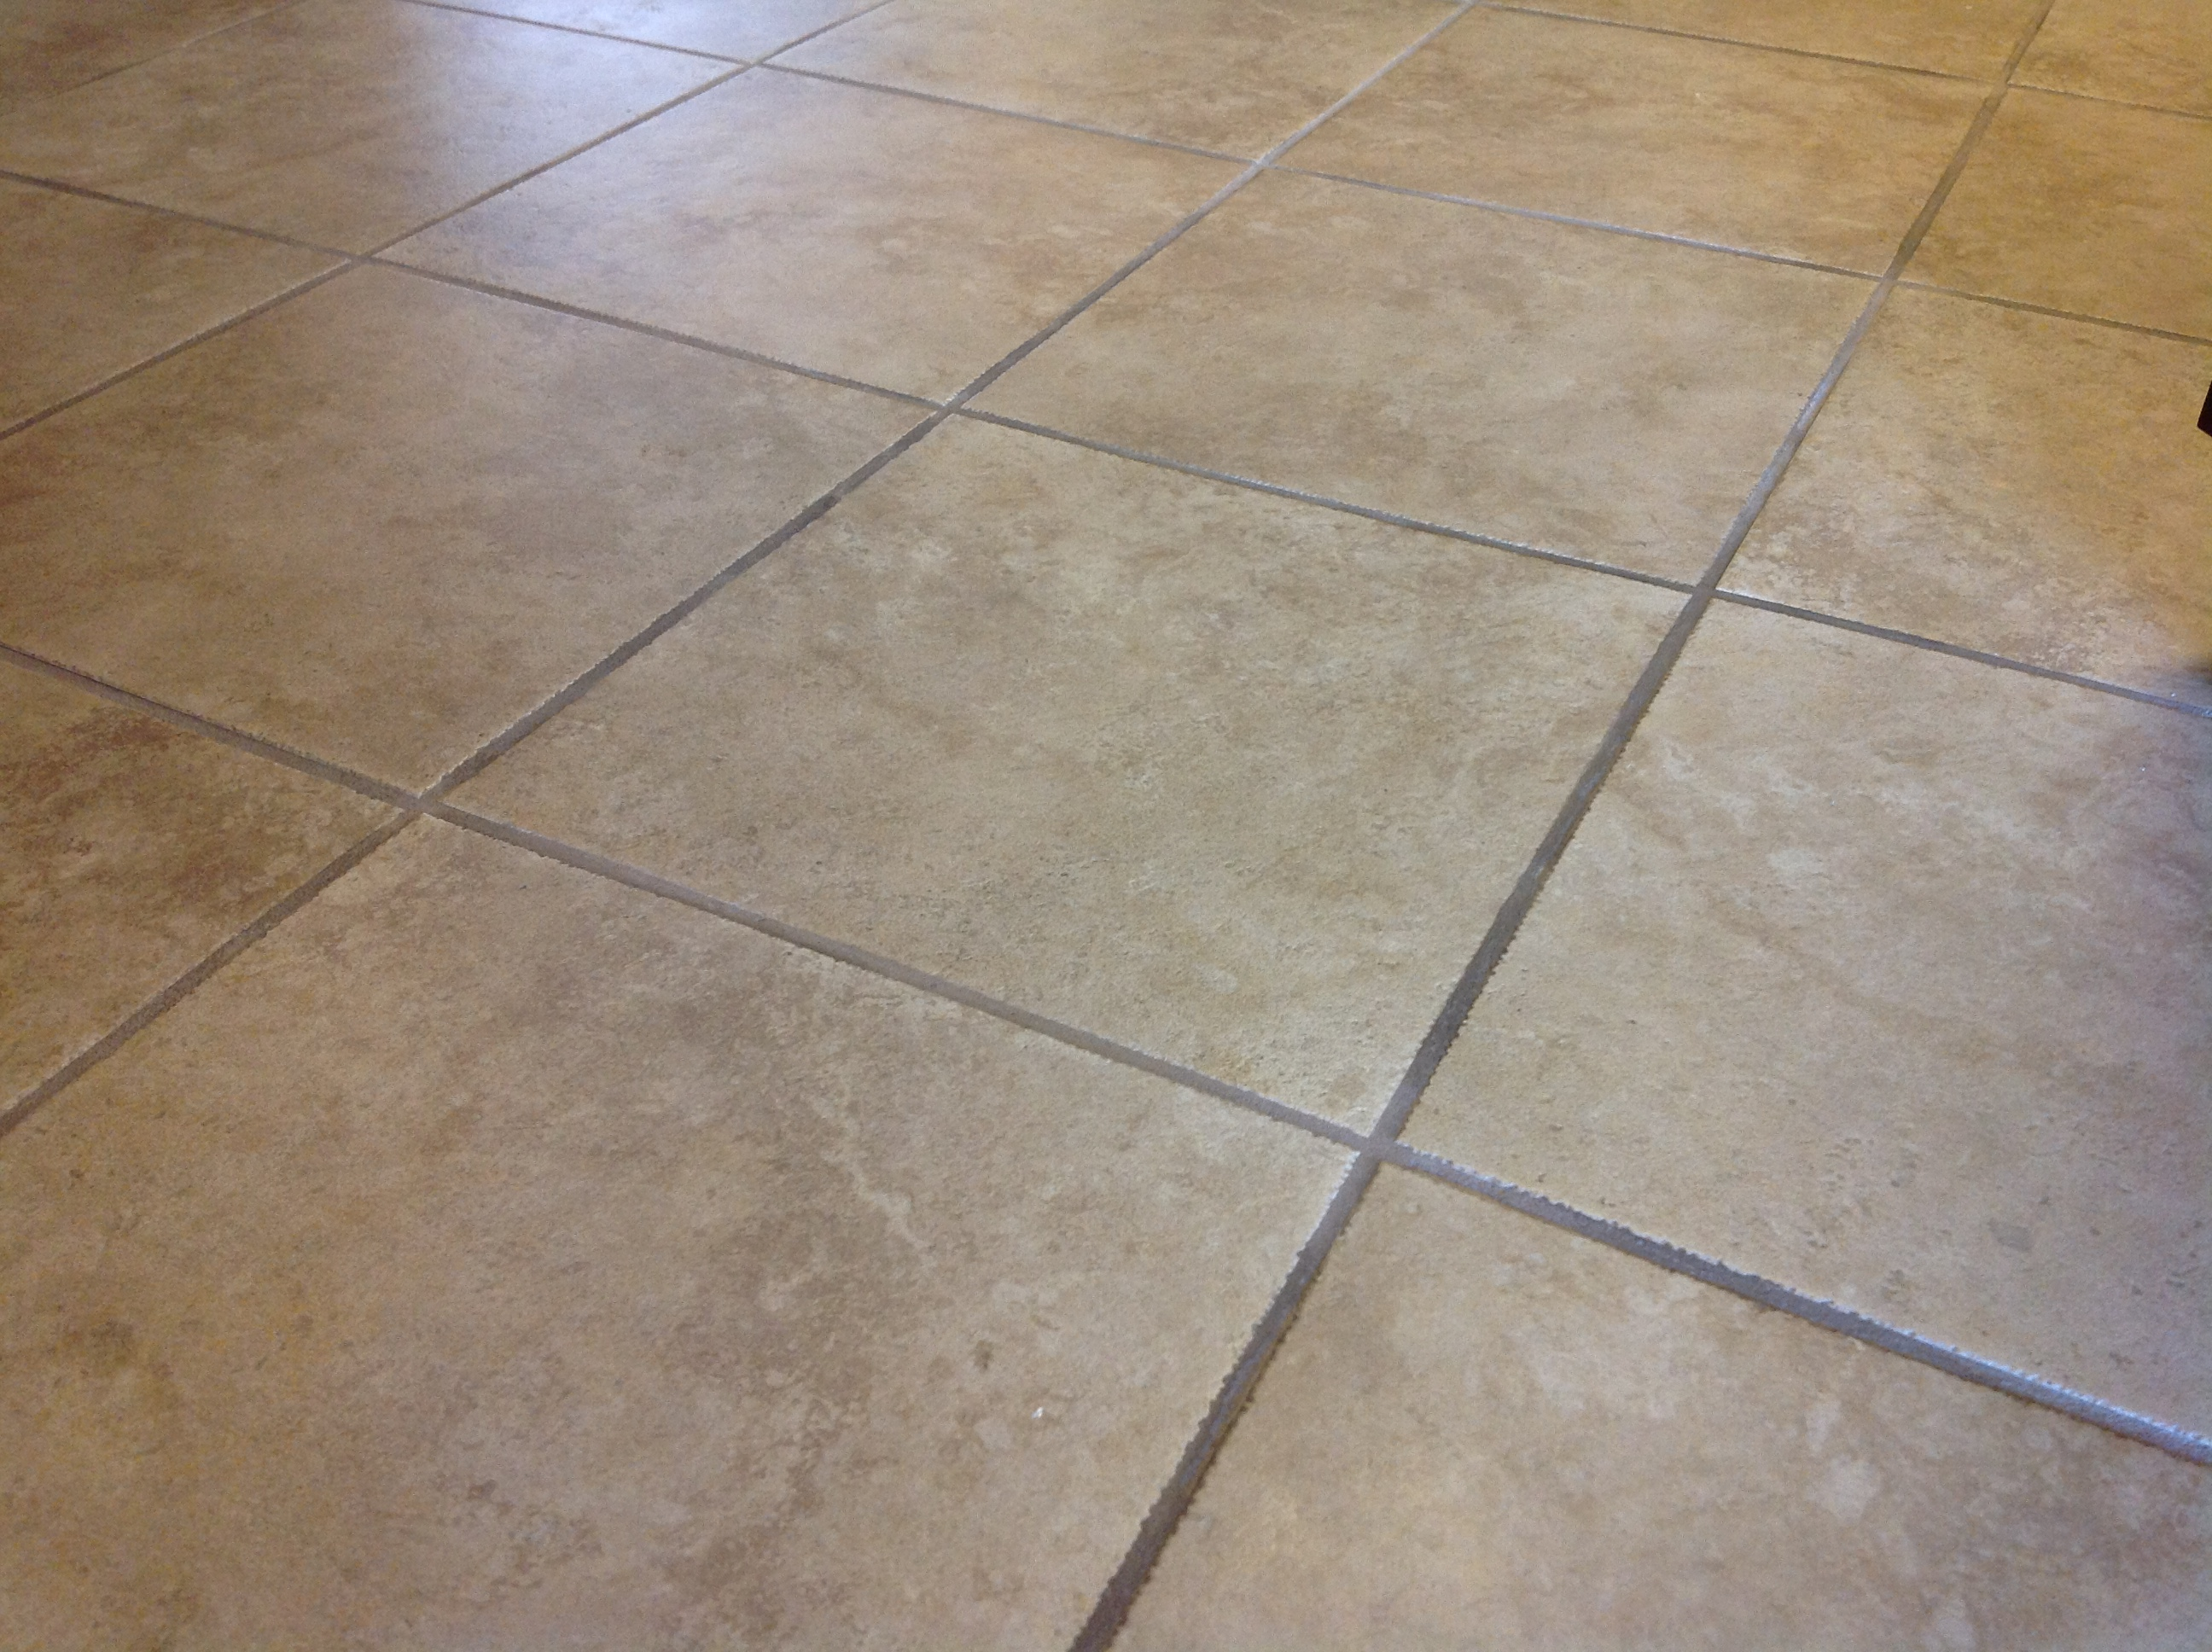 Porcelain Tile Carpet Glue Removal California Tile